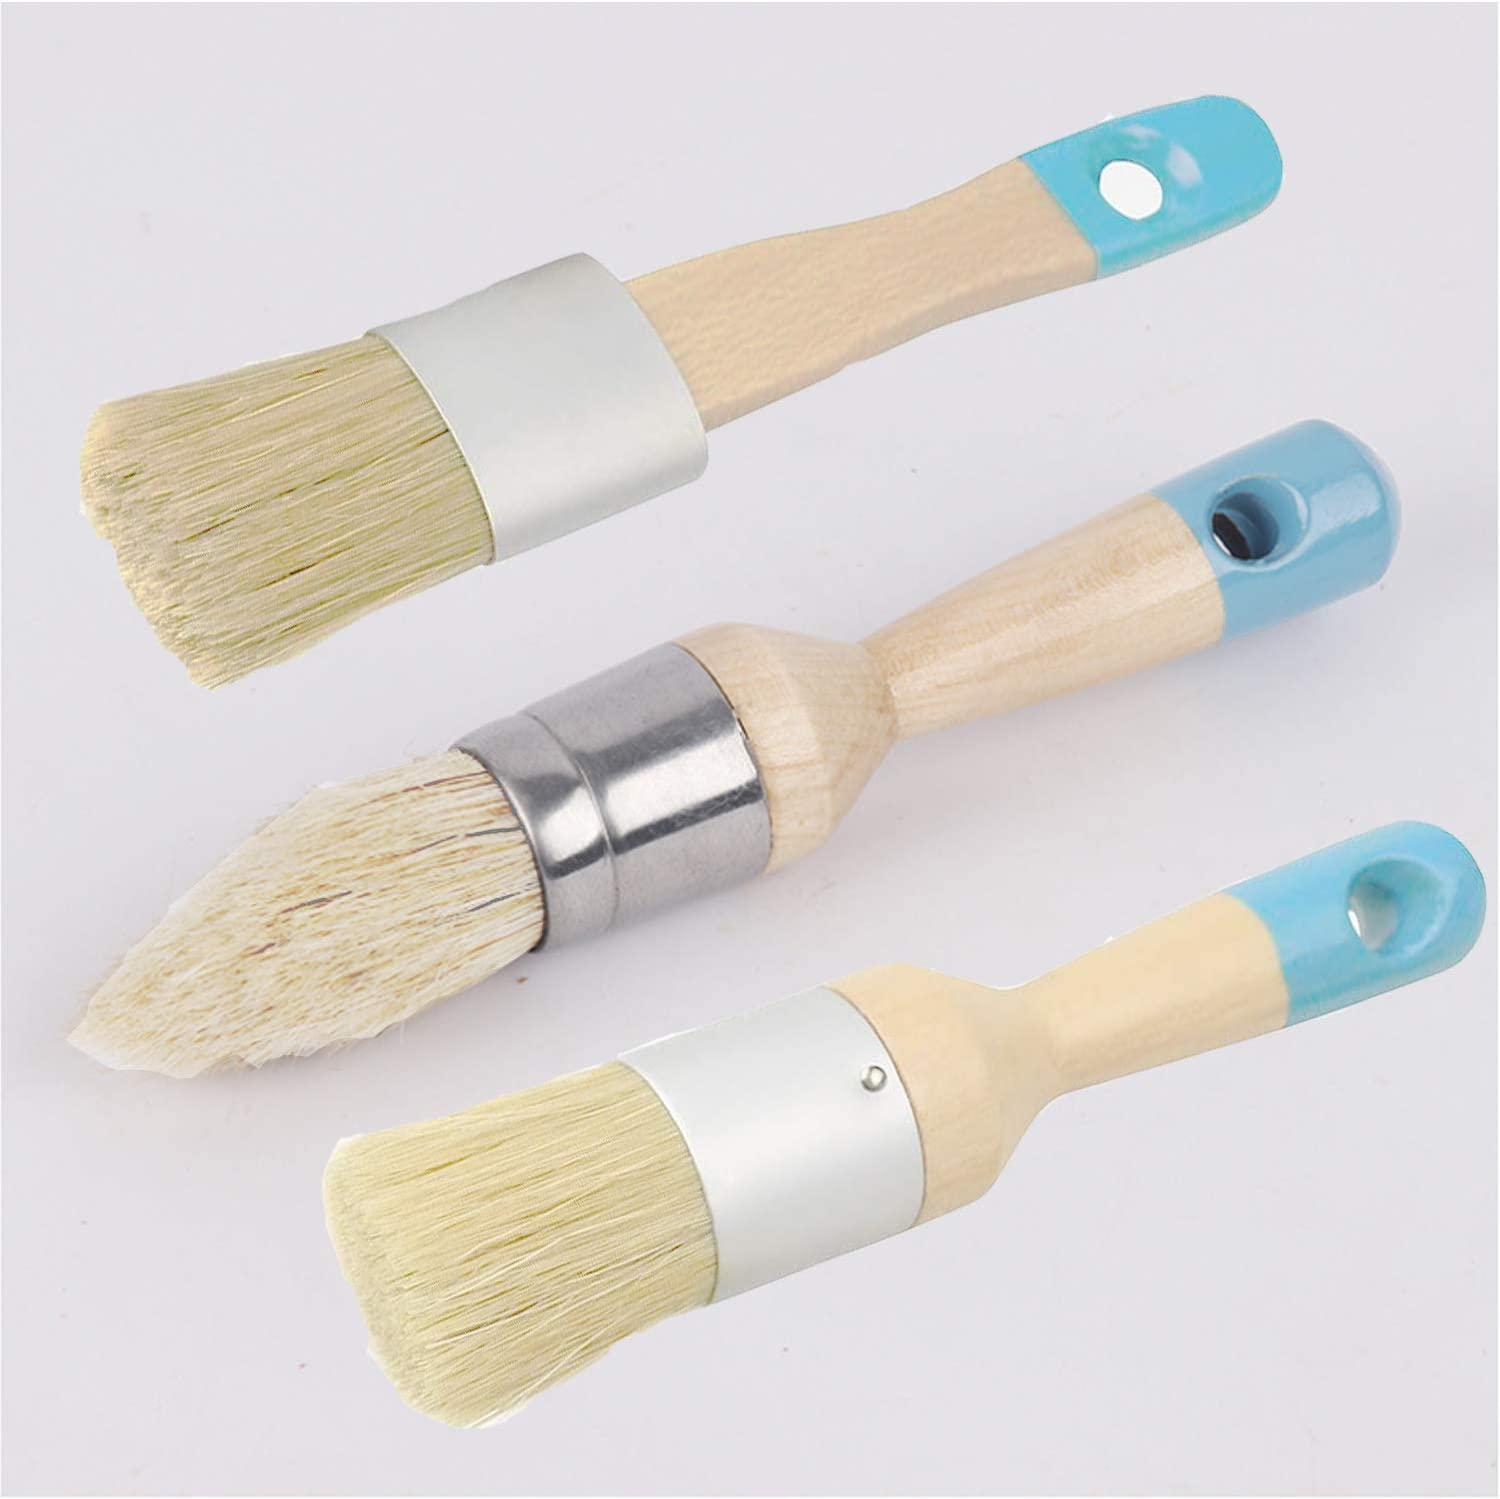 Chalk and Wax Paint Brushes Bristle Stencil Brushes, Pro-Grade-Chip Paint Brushes, for Wood Furniture Home Decor, Including Pointed, Flat and Round Chalked Paint Brushes (3 Pieces)